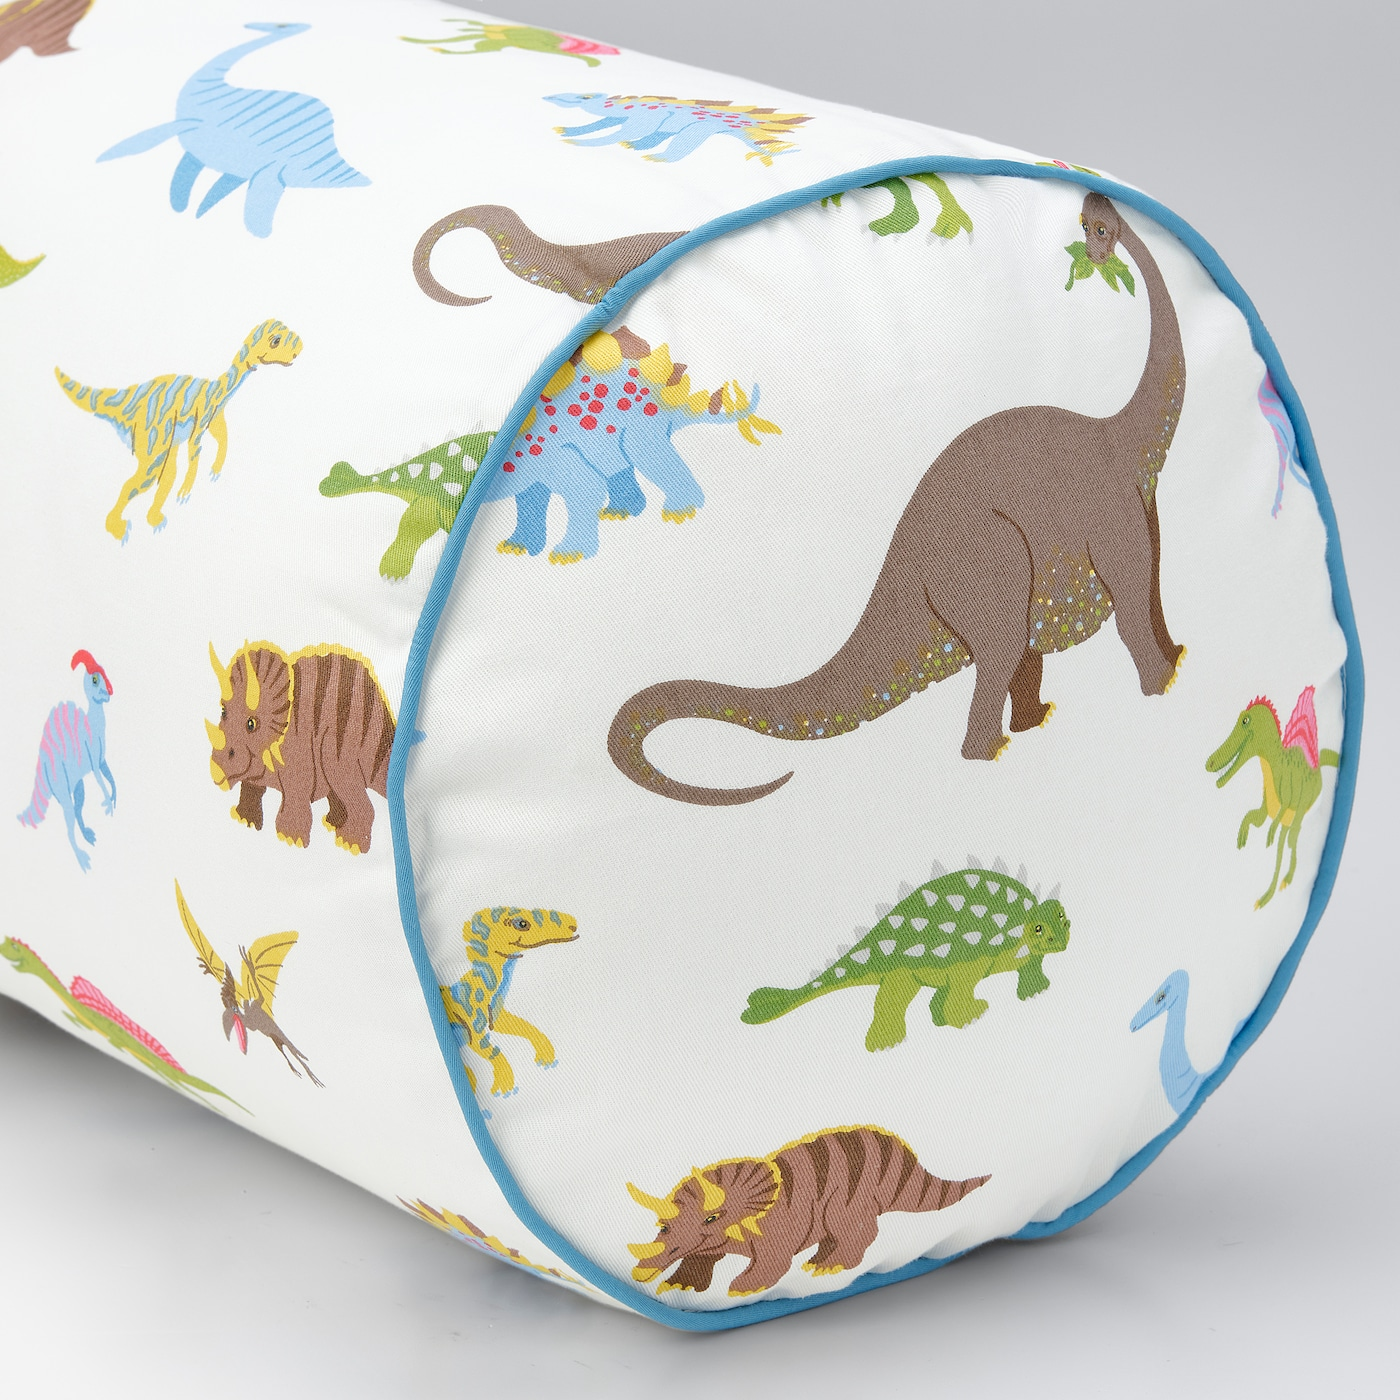 JÄTTELIK Cushion, dinosaur/multicolour, 80 cm